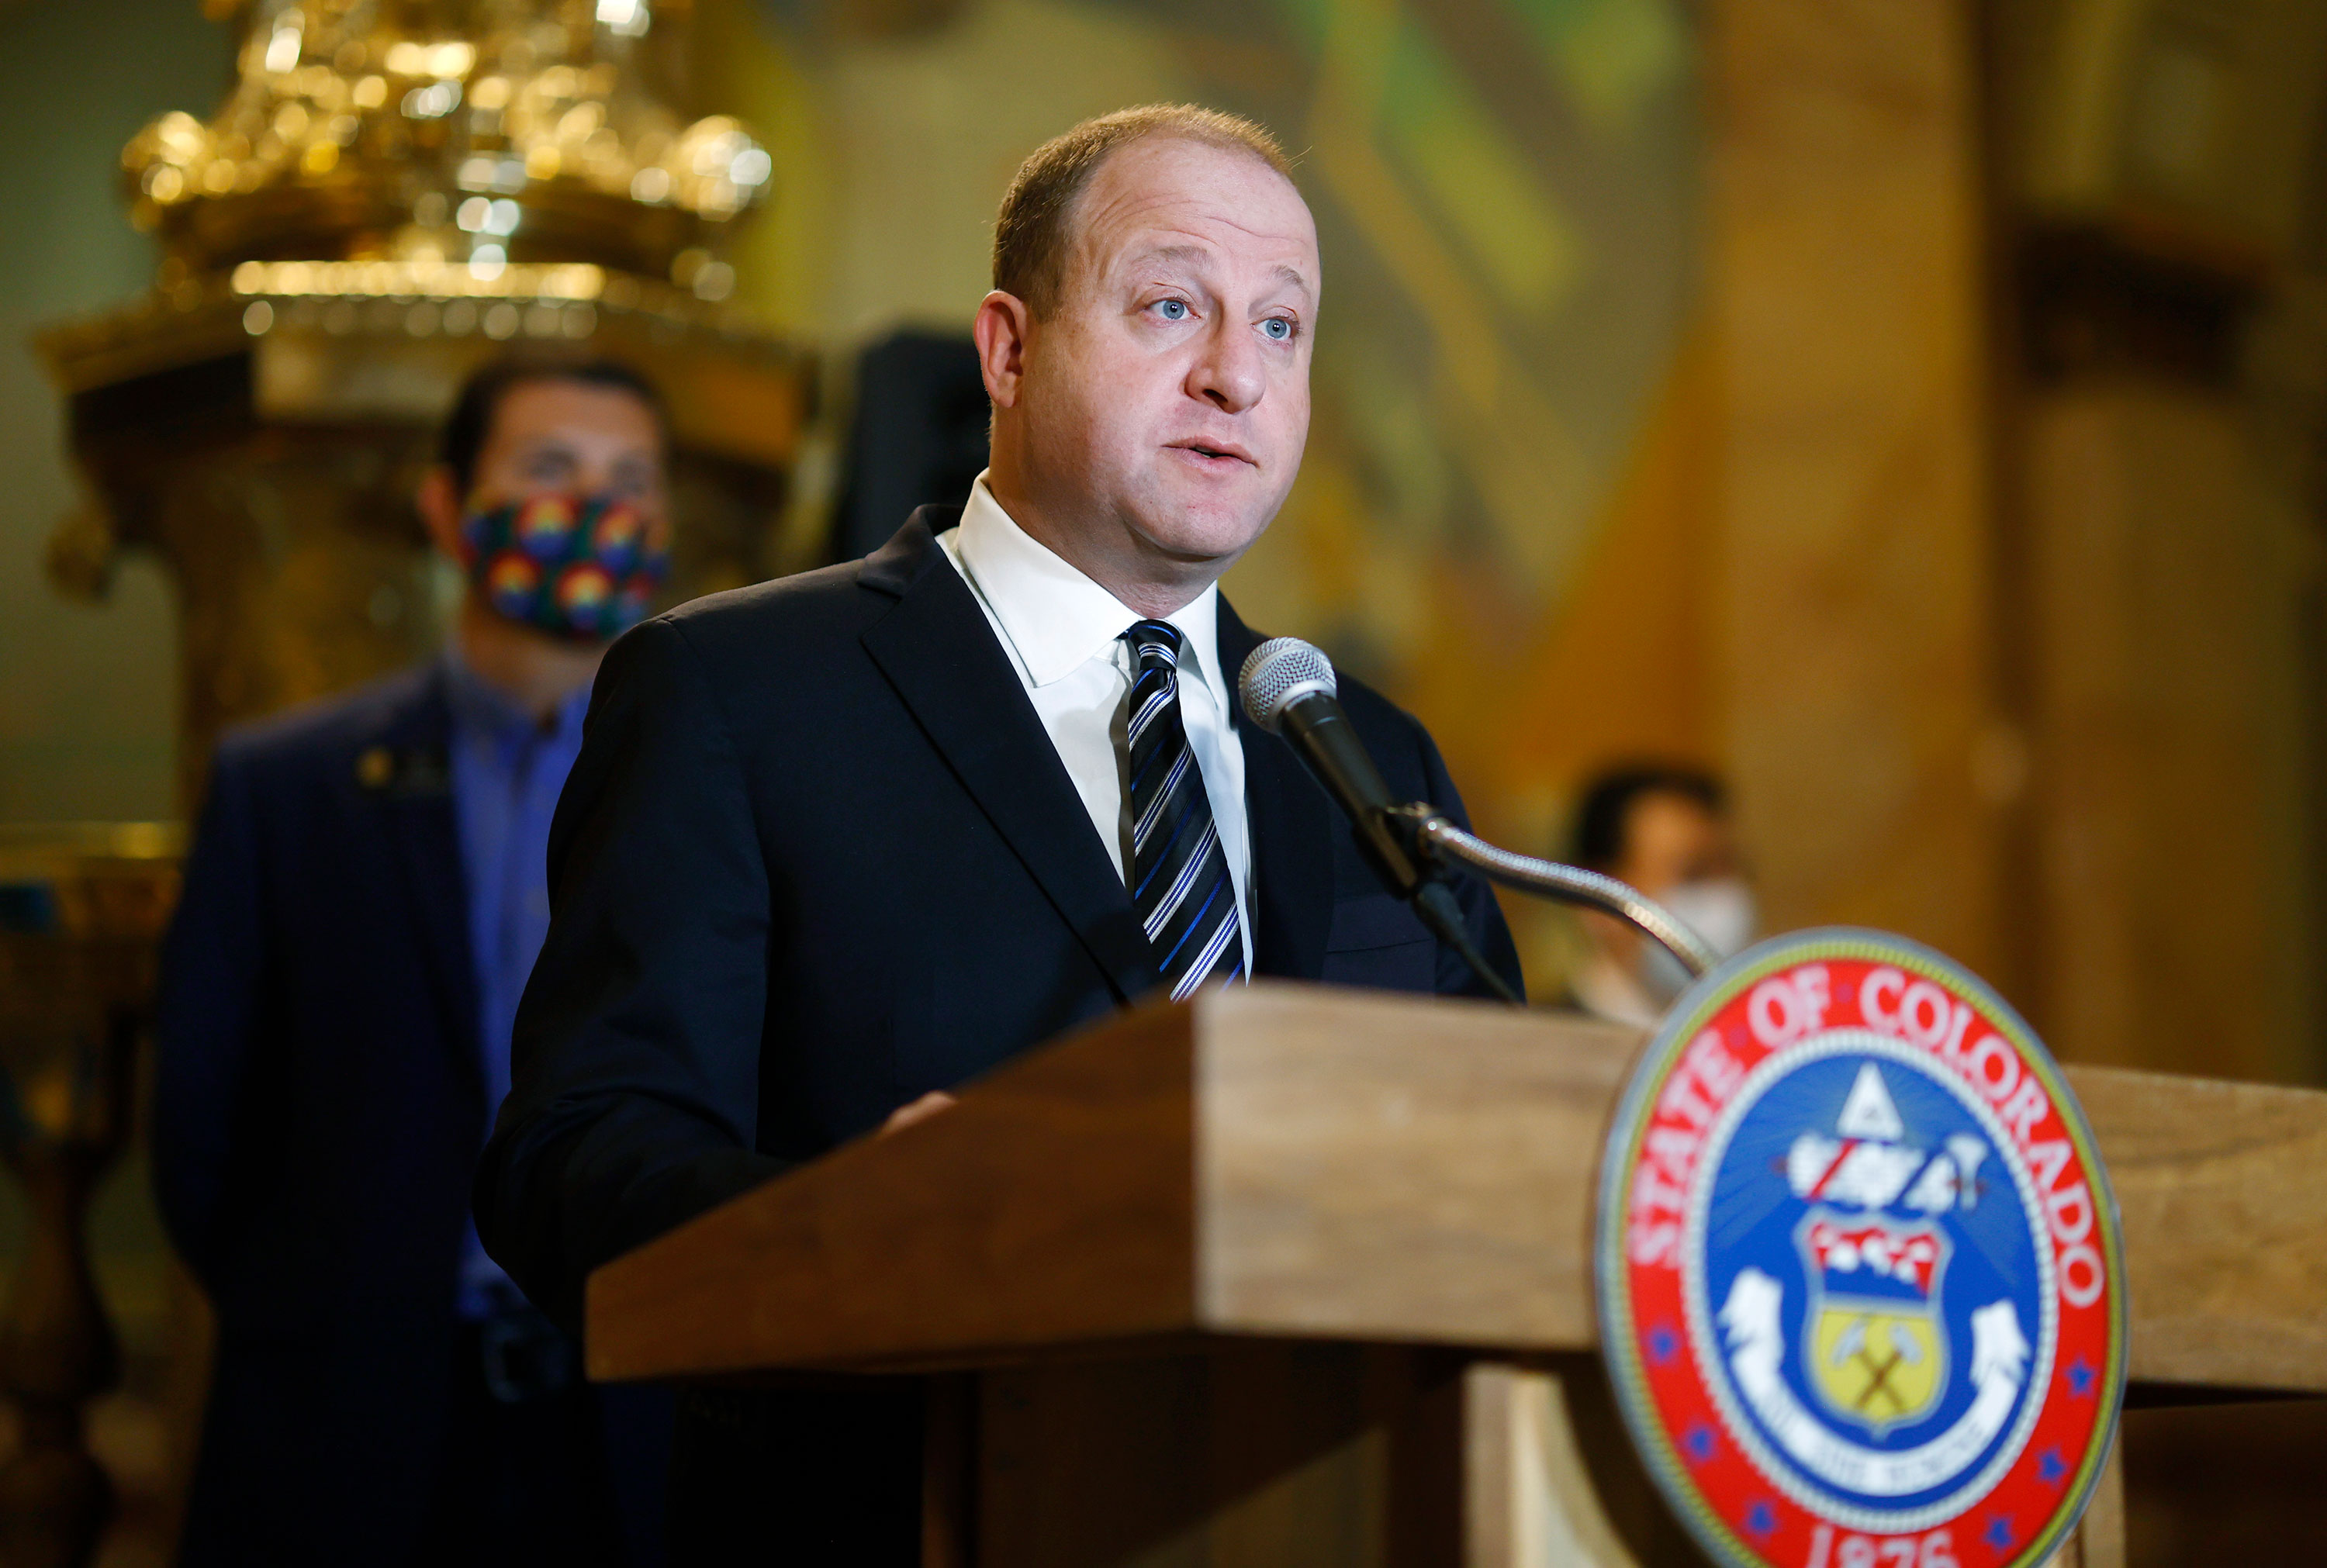 Colorado Gov. Jared Polis speaks before signing a police accountability bill on Friday, June 19 in Denver.